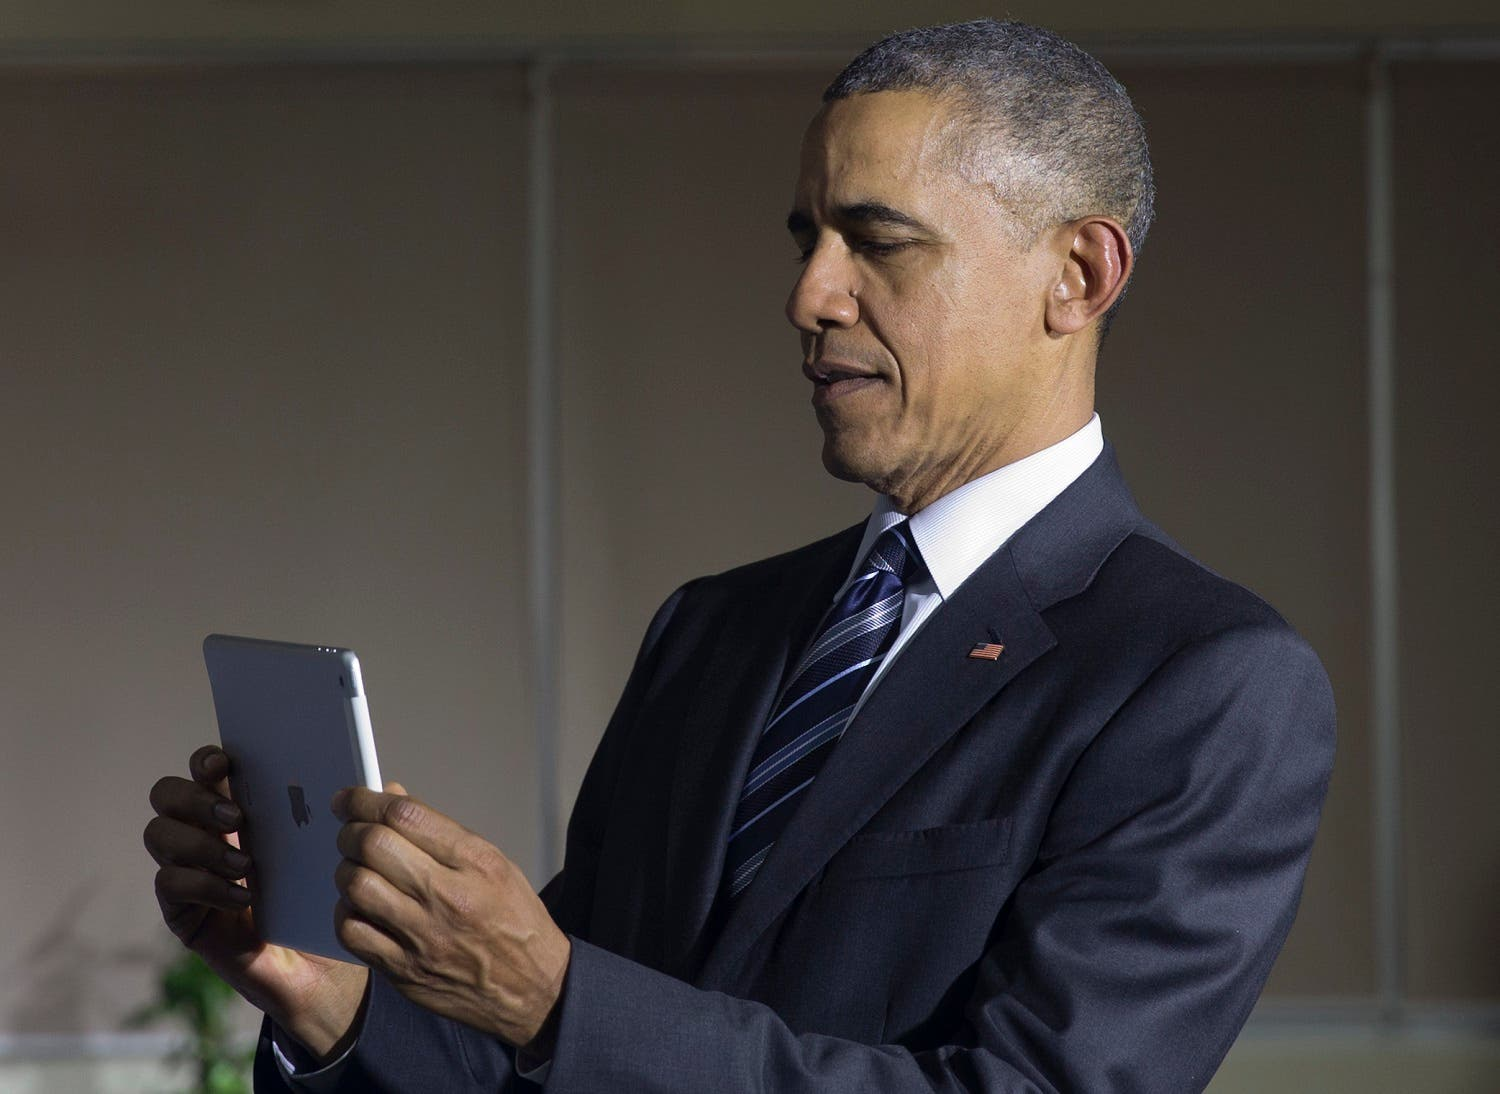 Today, President Barack Obama gets his daily briefings on his iPad; they include graphics, videos and previous articles. (AP)